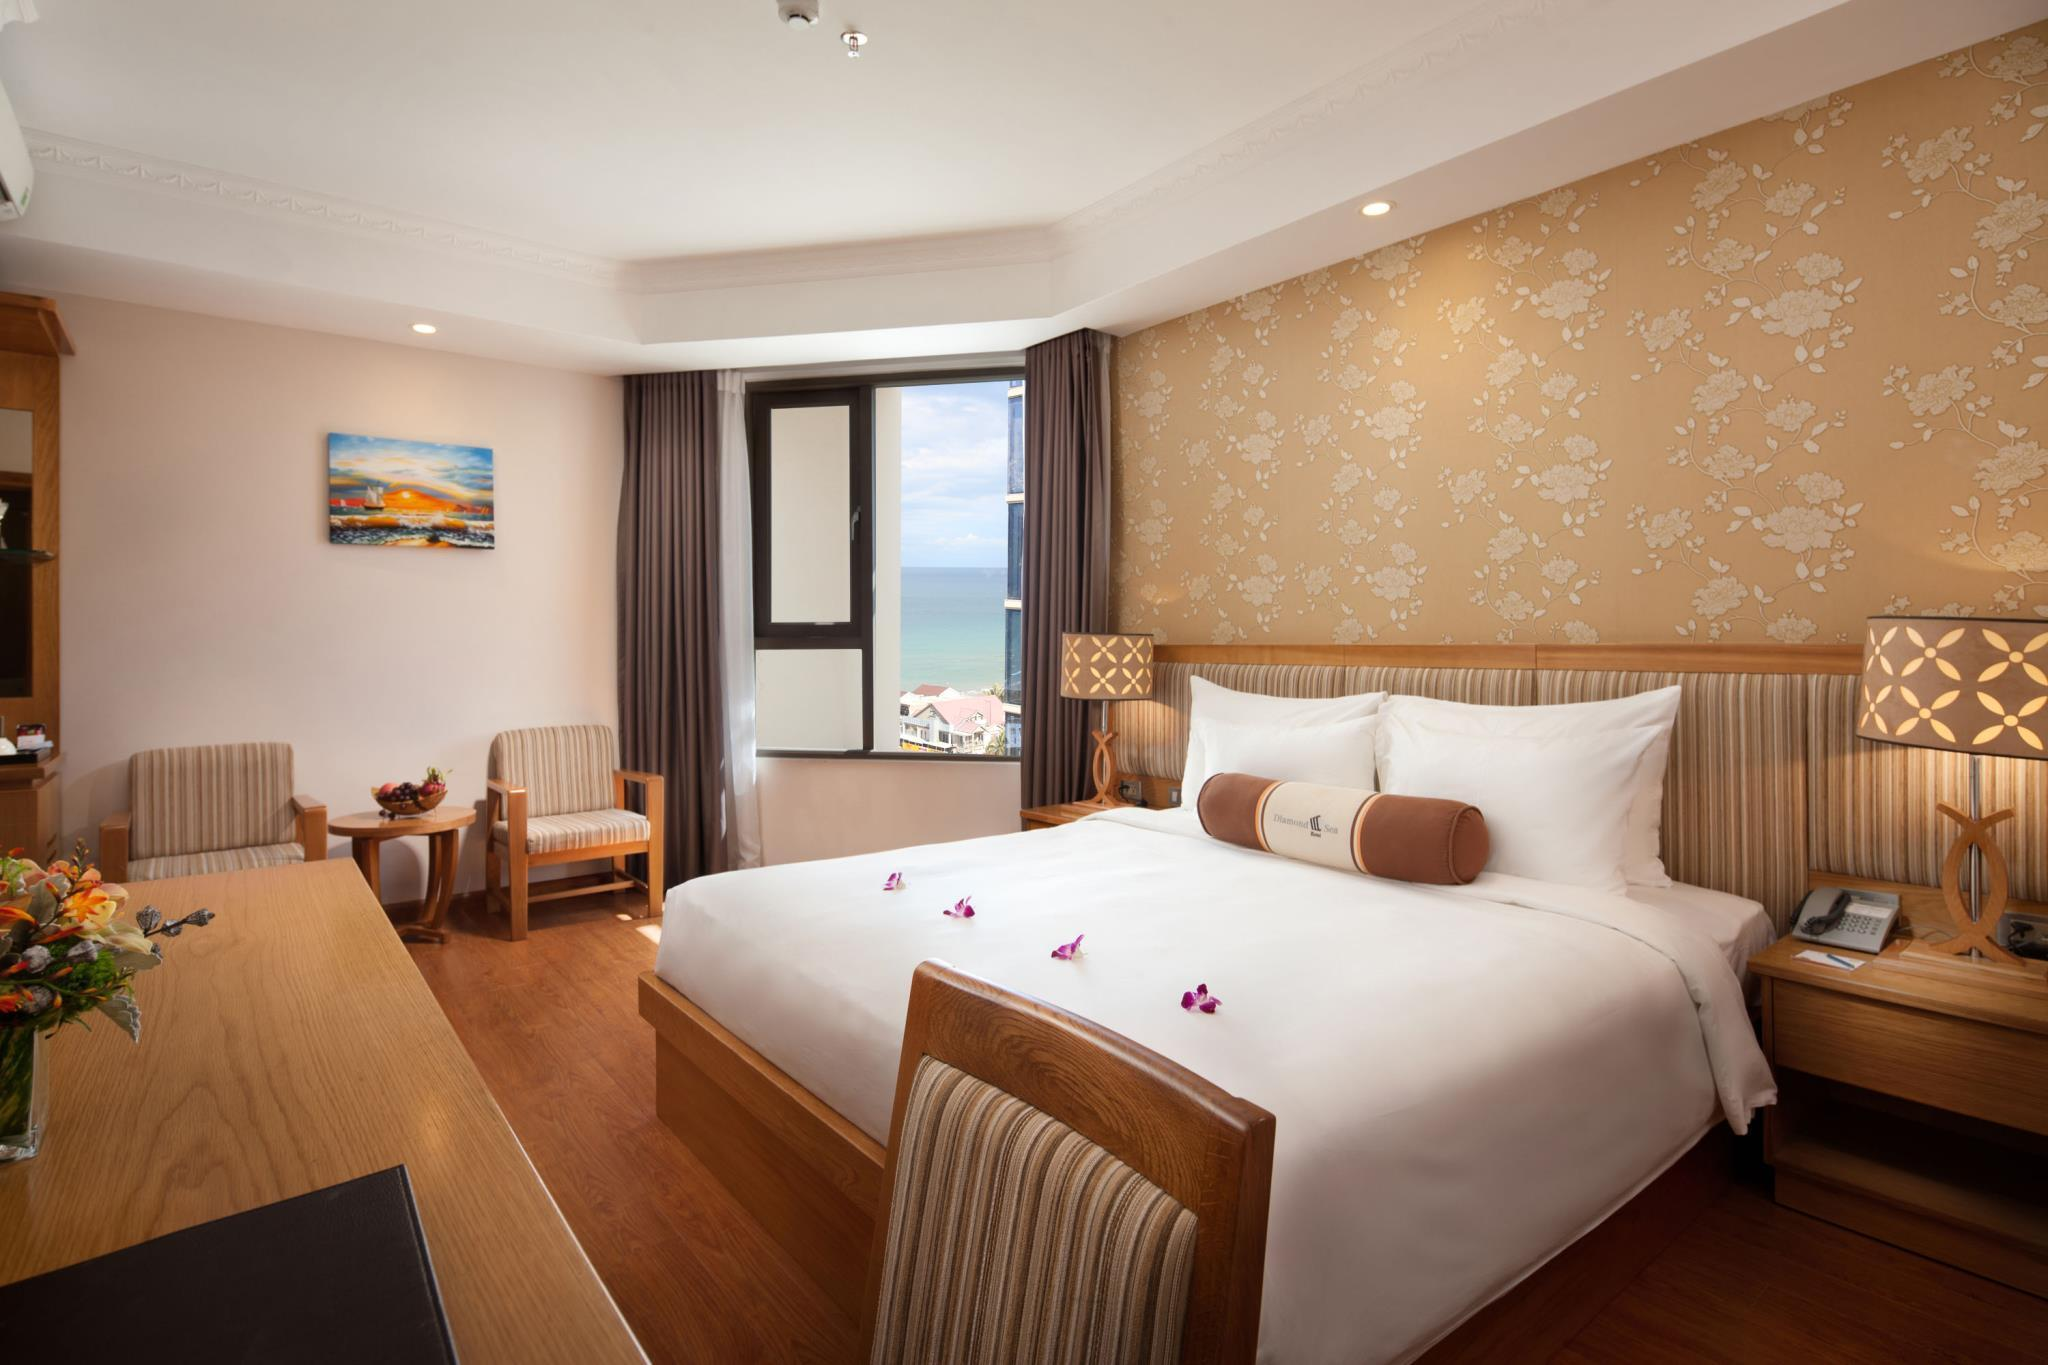 Deluxe giường đôi Hướng biển một phần (Deluxe Double Partial Sea View)